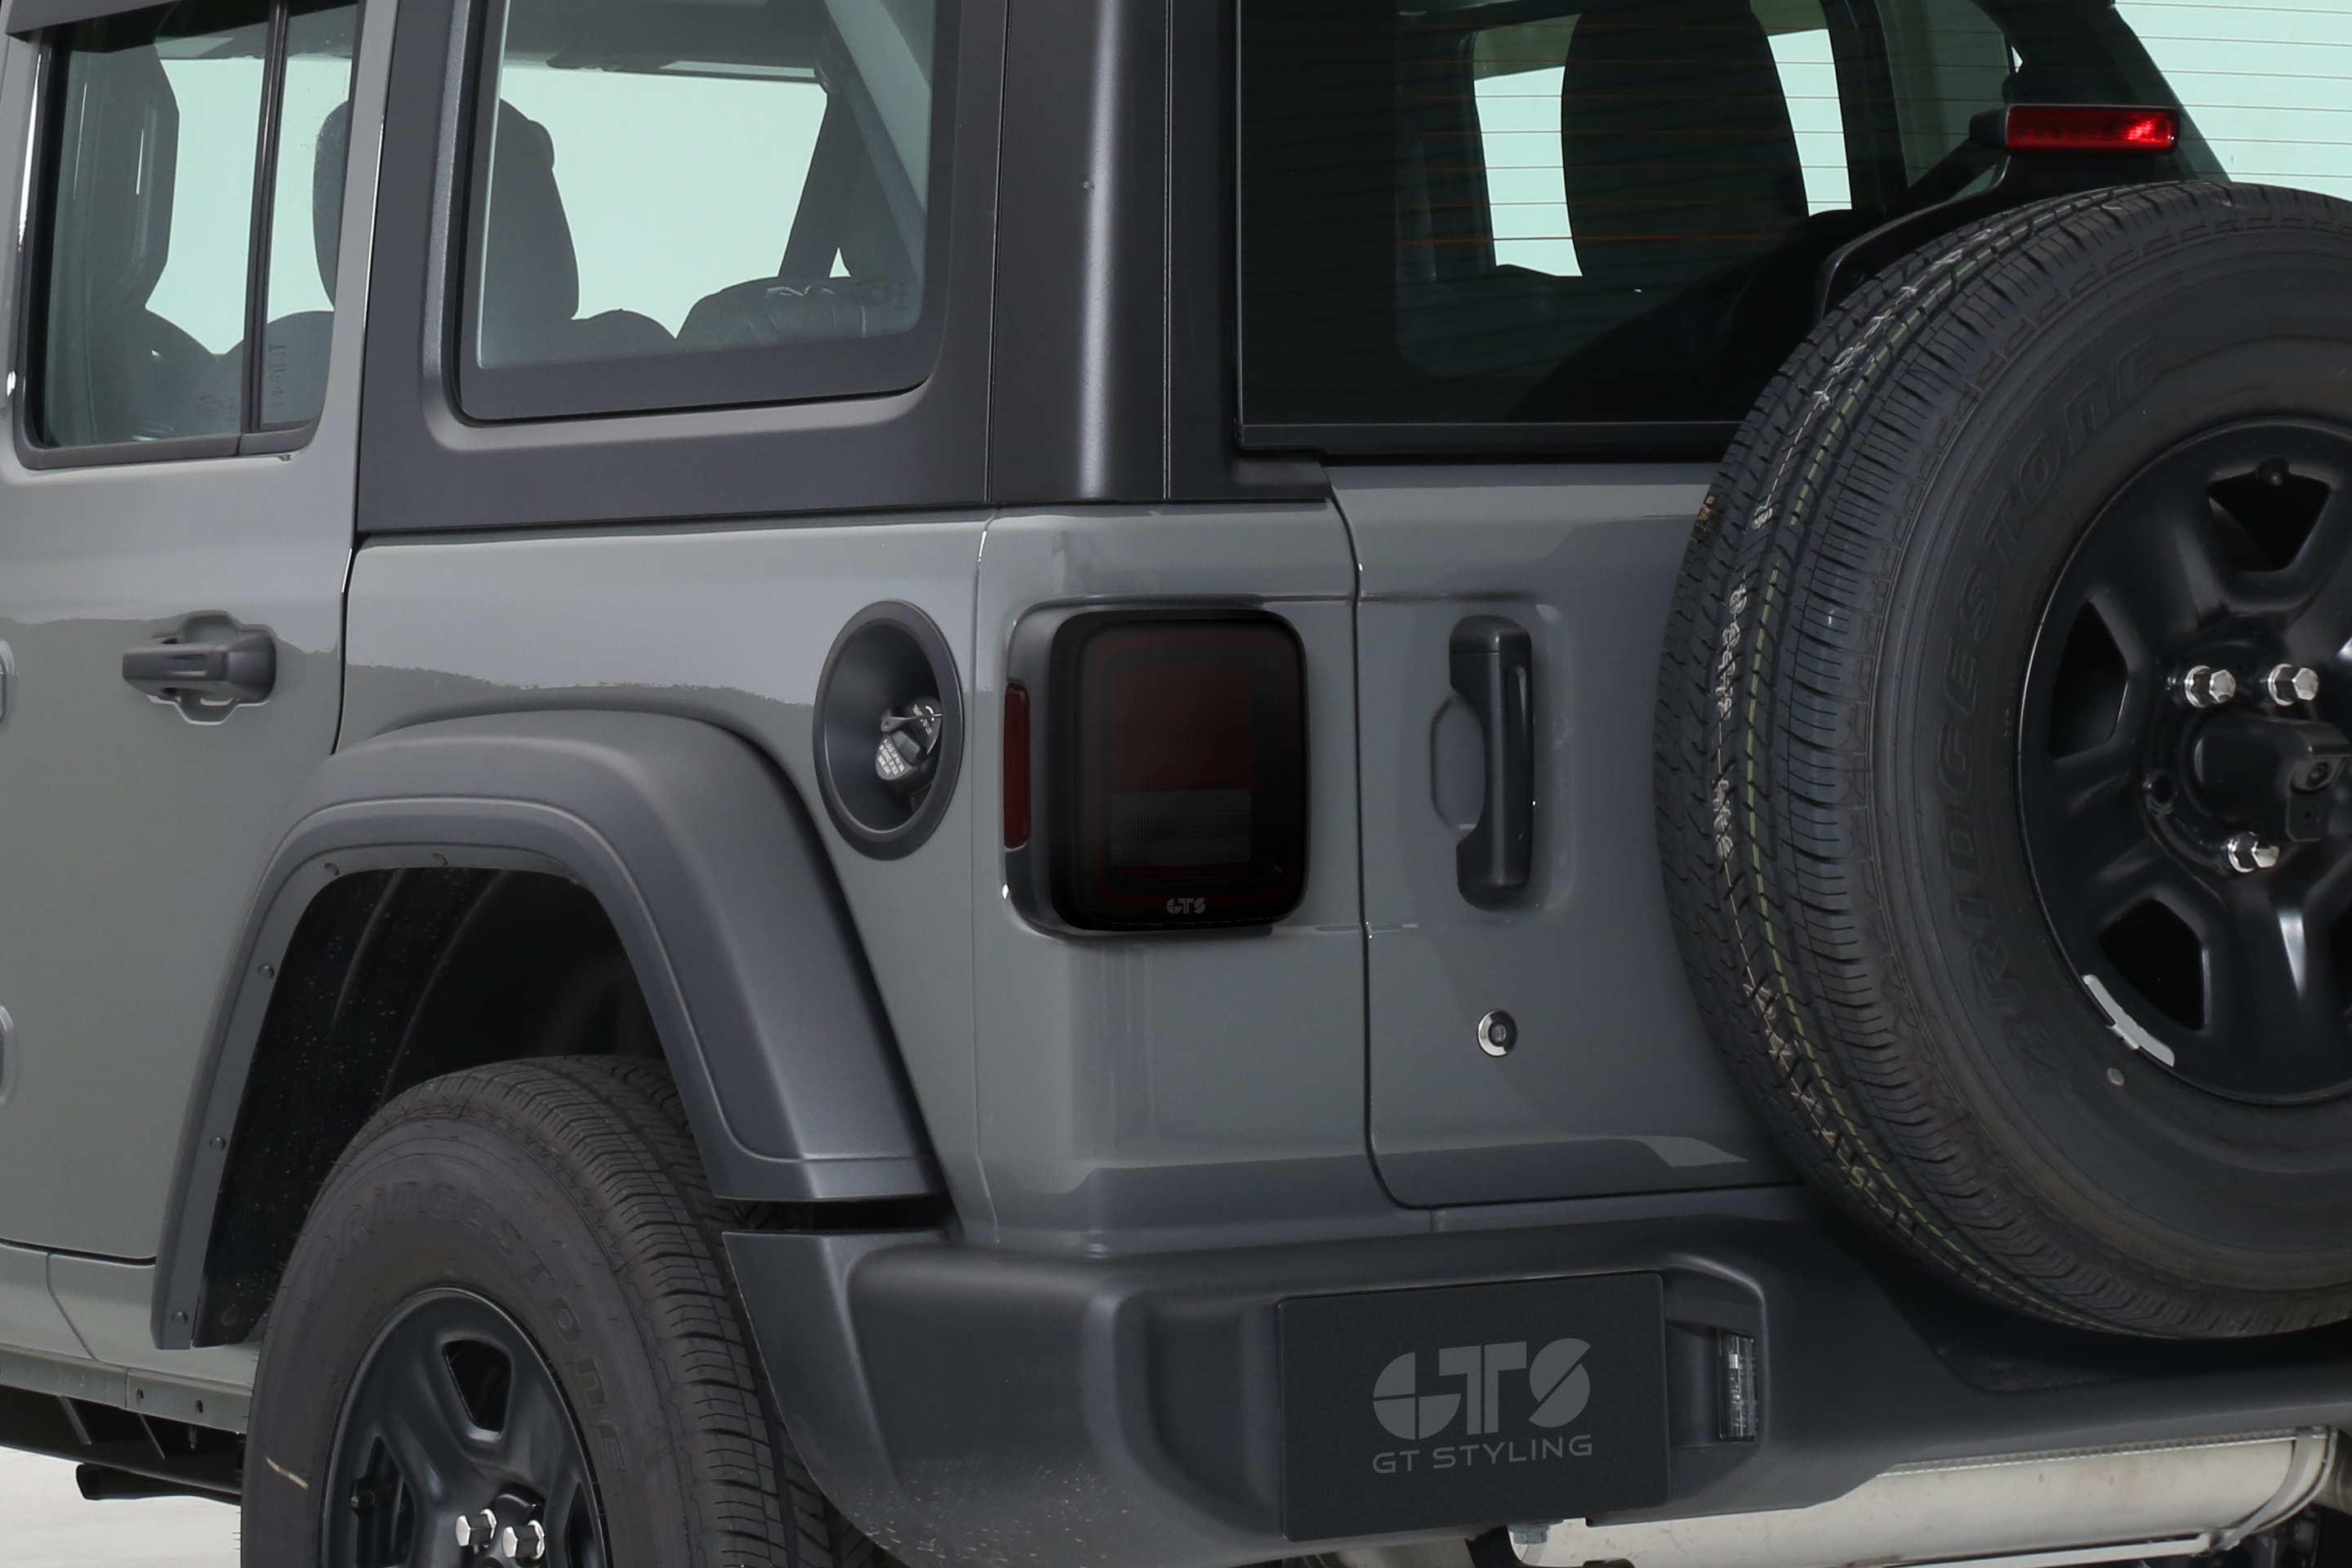 2018-2019 JEEP WRANGLER JL/JLU ALL TAILLIGHT COVER, 2PC, SMOKE (DOES NOT FIT FACTORY LED EQUIPPED VEHICLES)